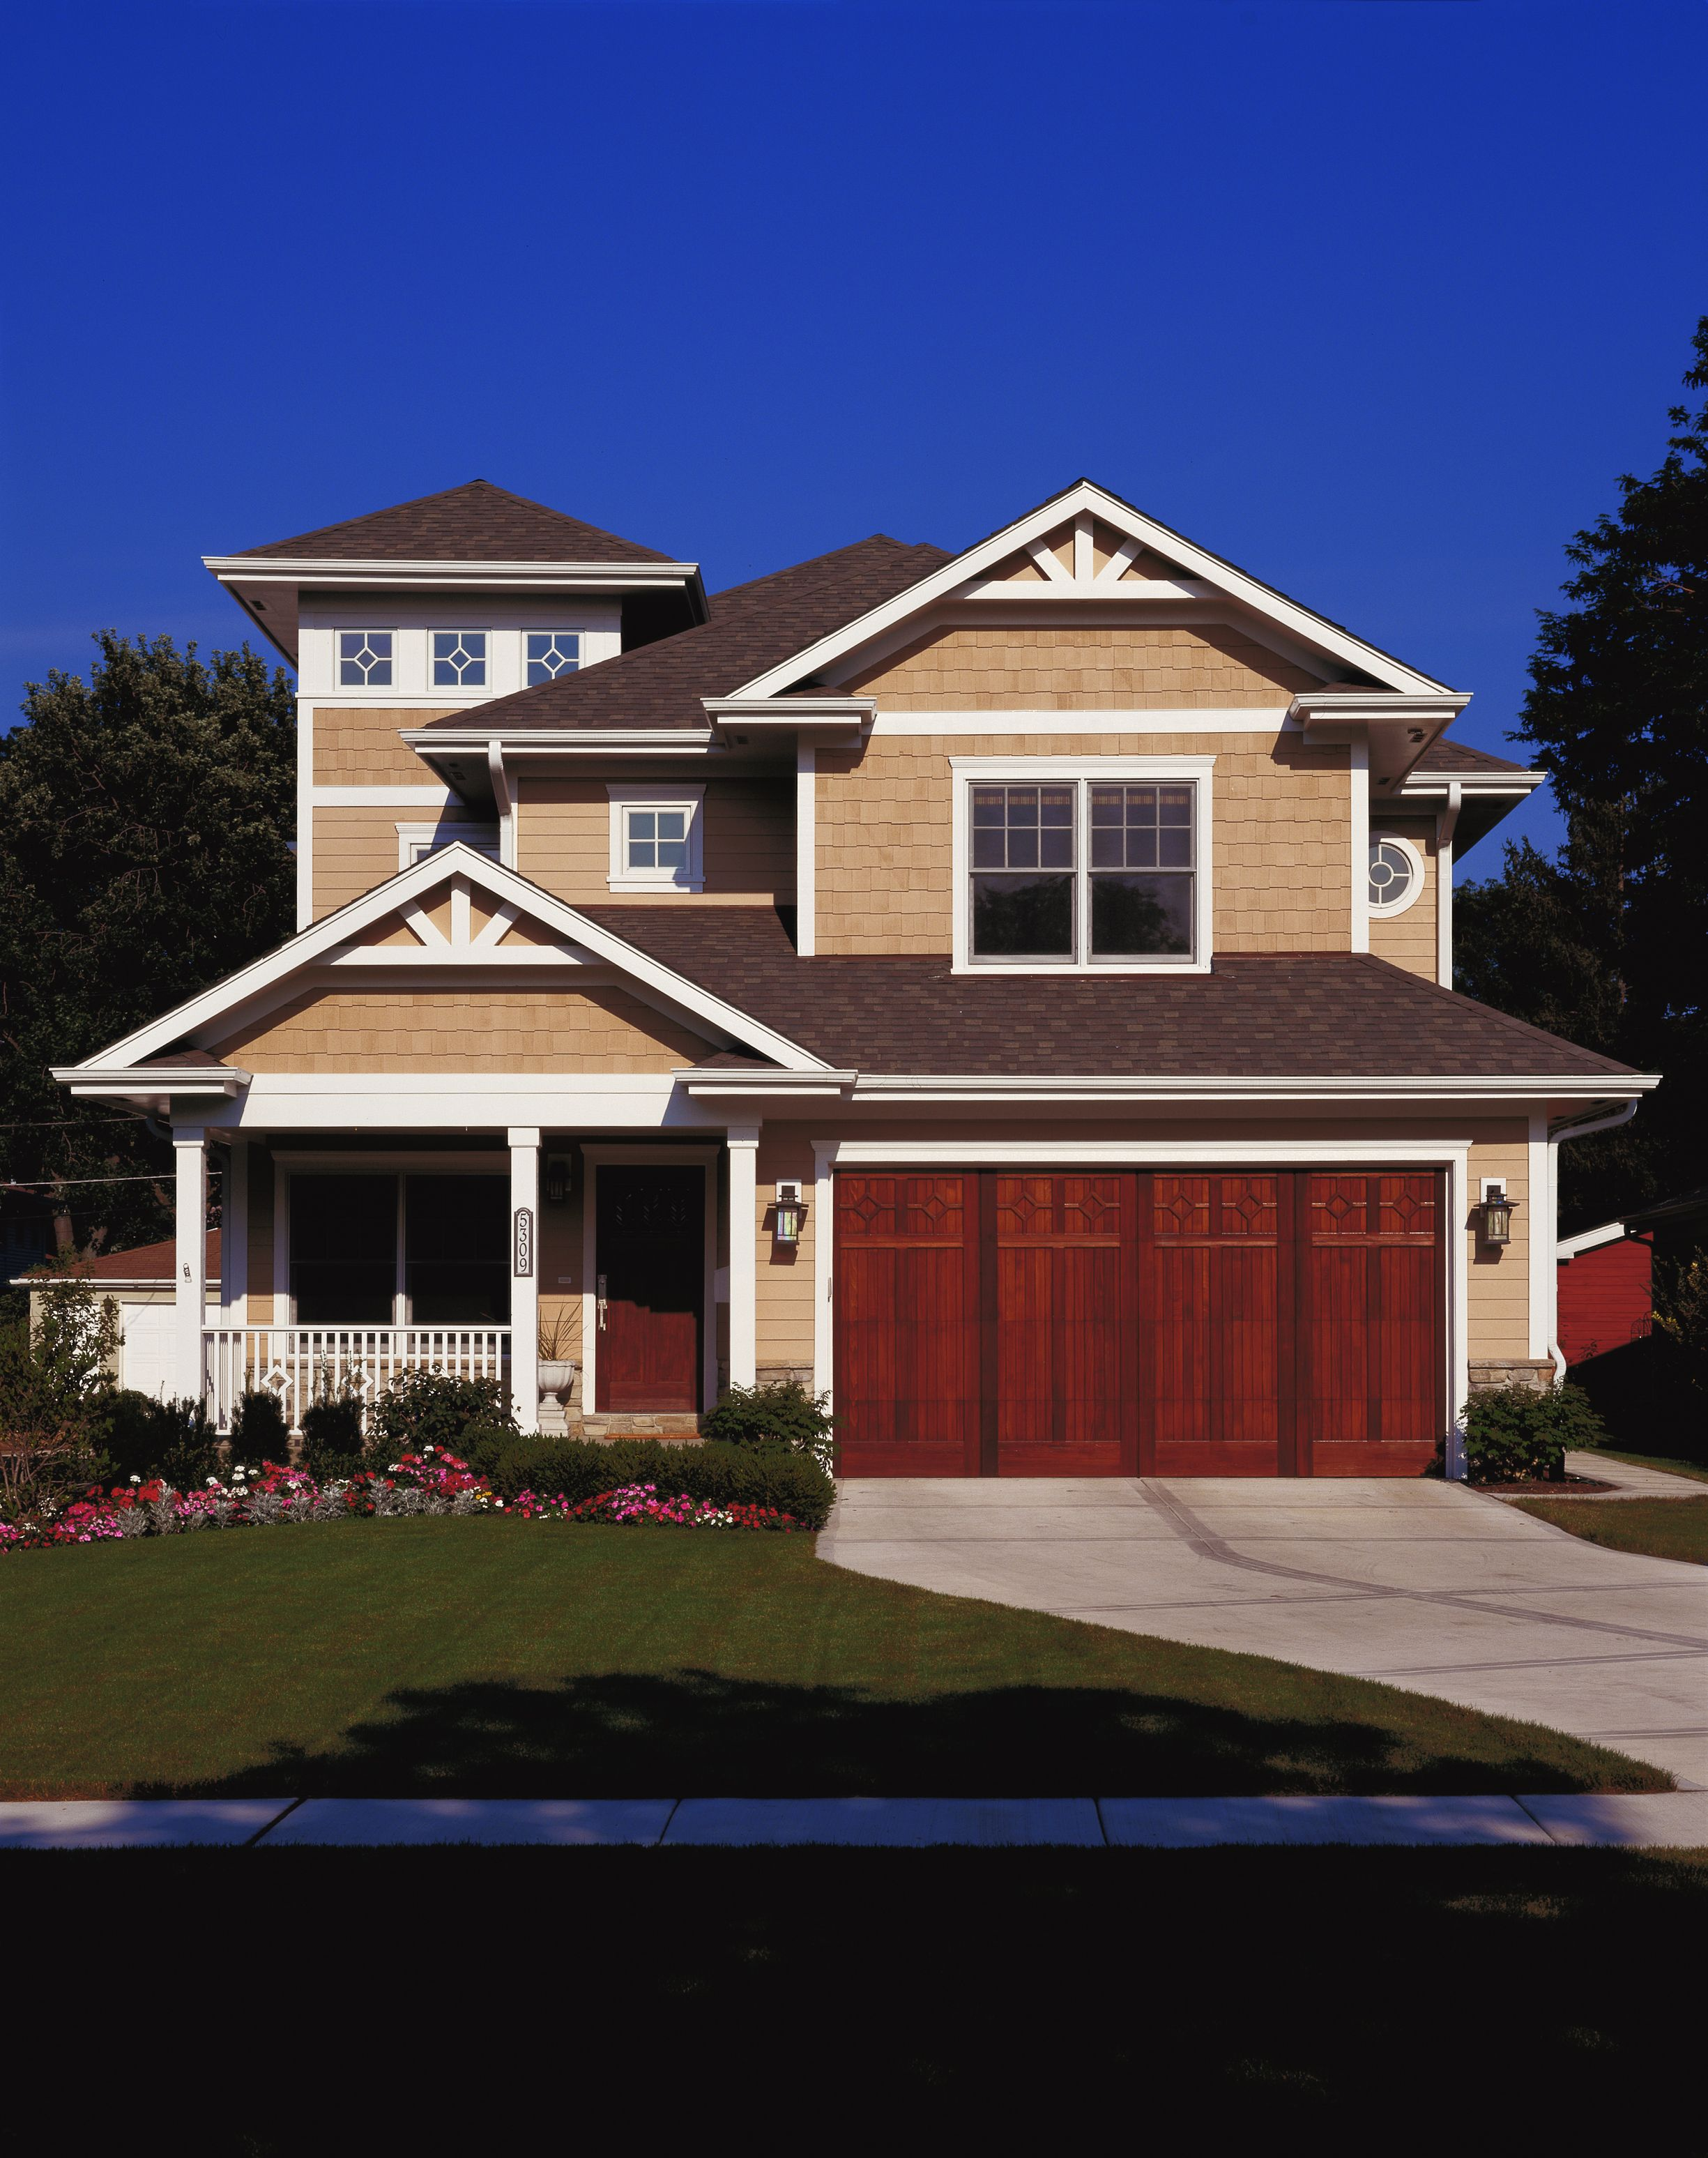 12 12 Architects Planners Craftsman Style Homes House Design